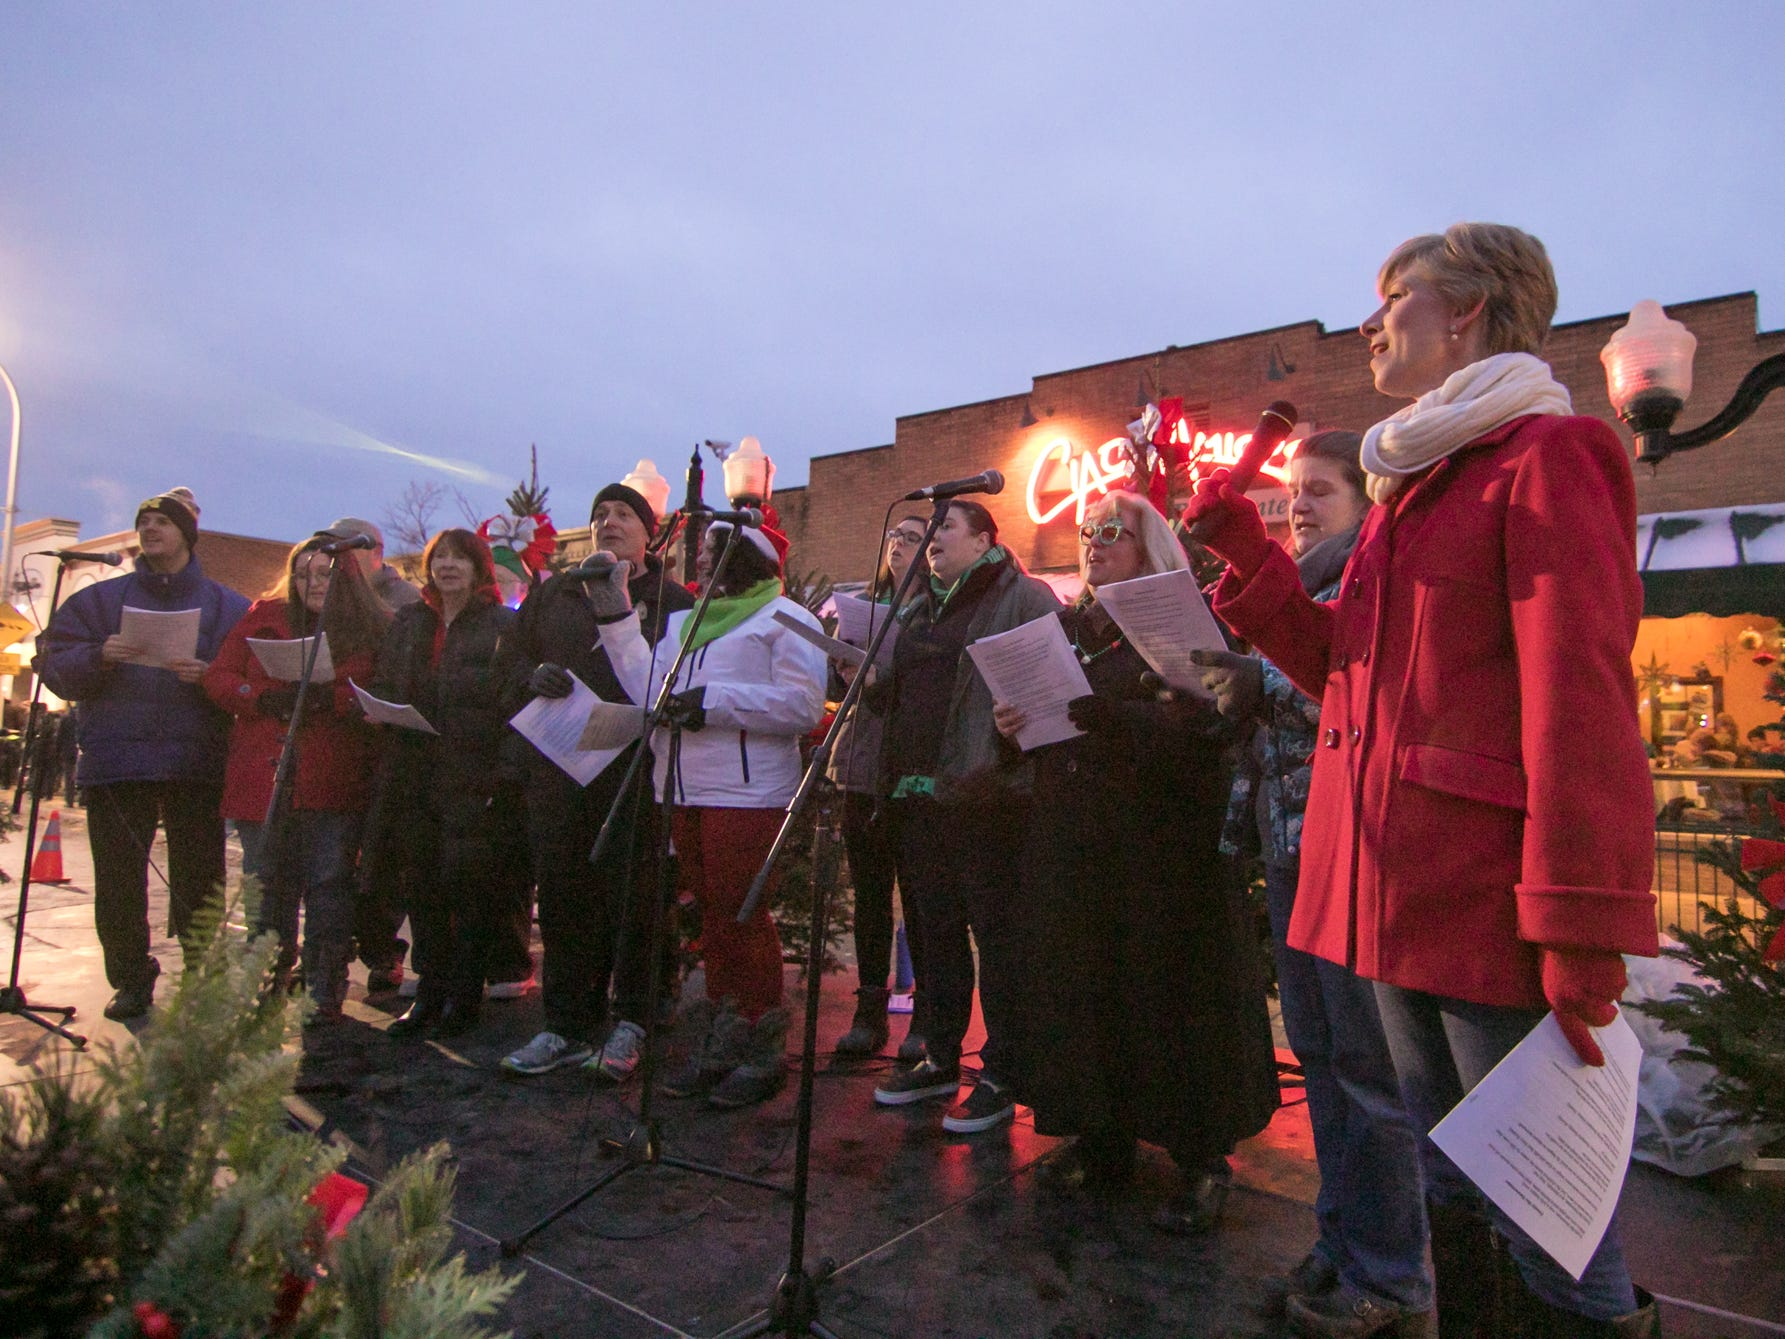 Cornerstone Church's carolers lead the crowd surrounding a stage on Main Street in Christmas carols Saturday, Nov. 17, 2018 at the Holiday Glow.